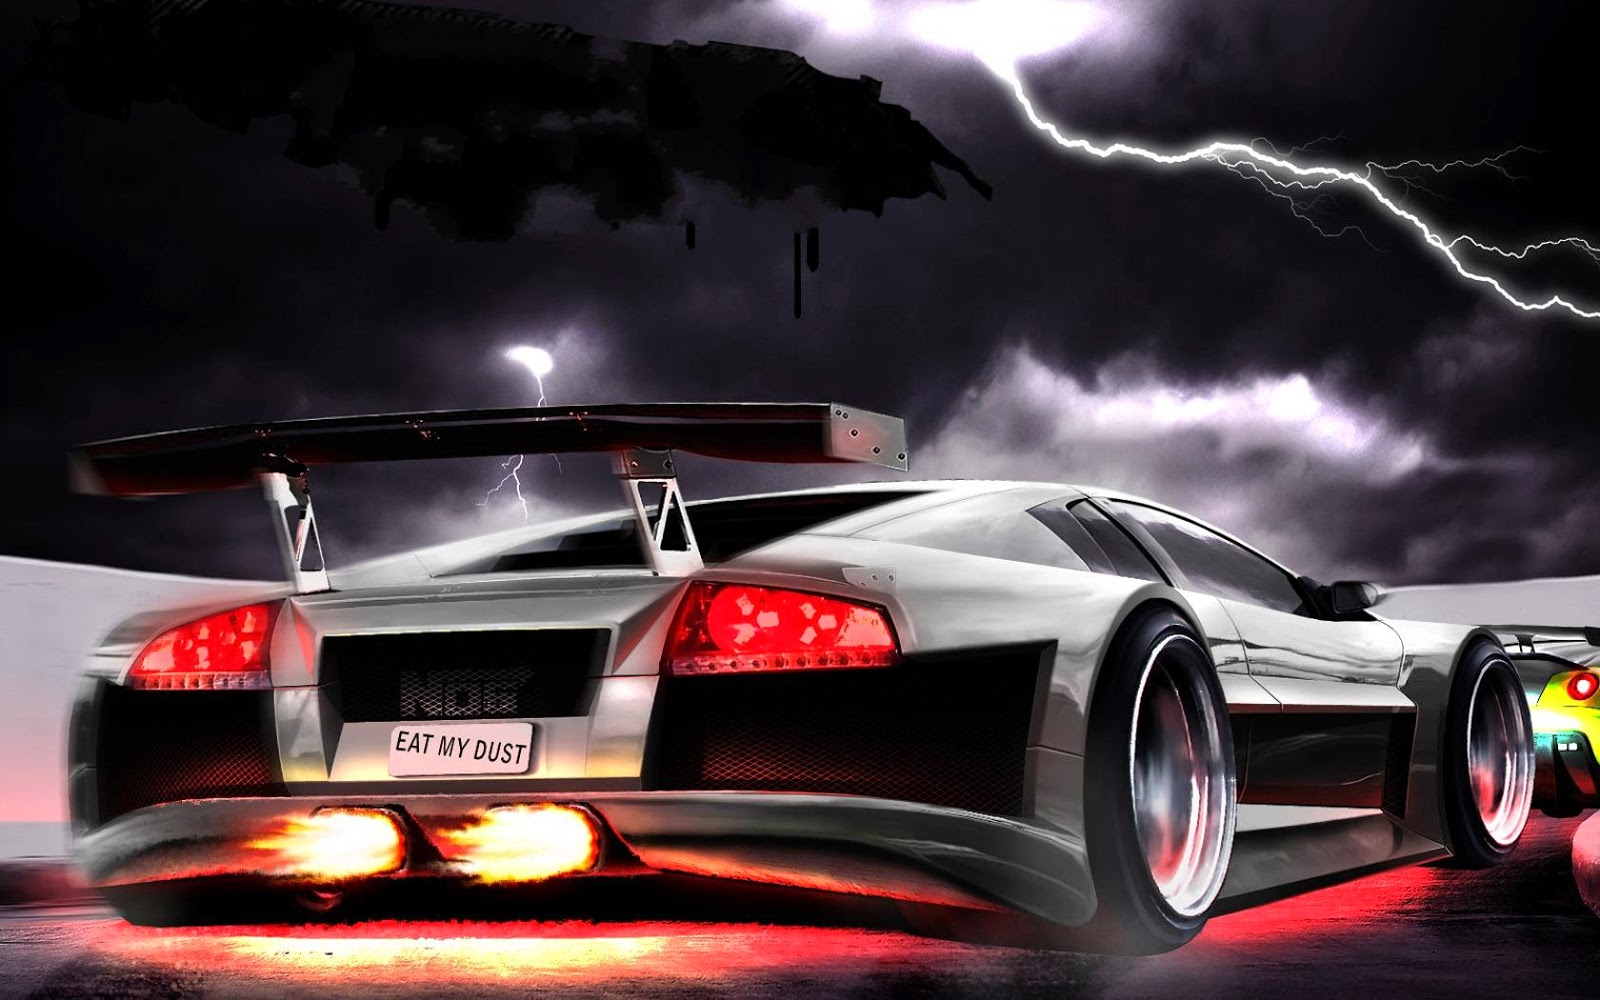 Awesome 3D Wallpapers Car, 3D Cars Wallpapers